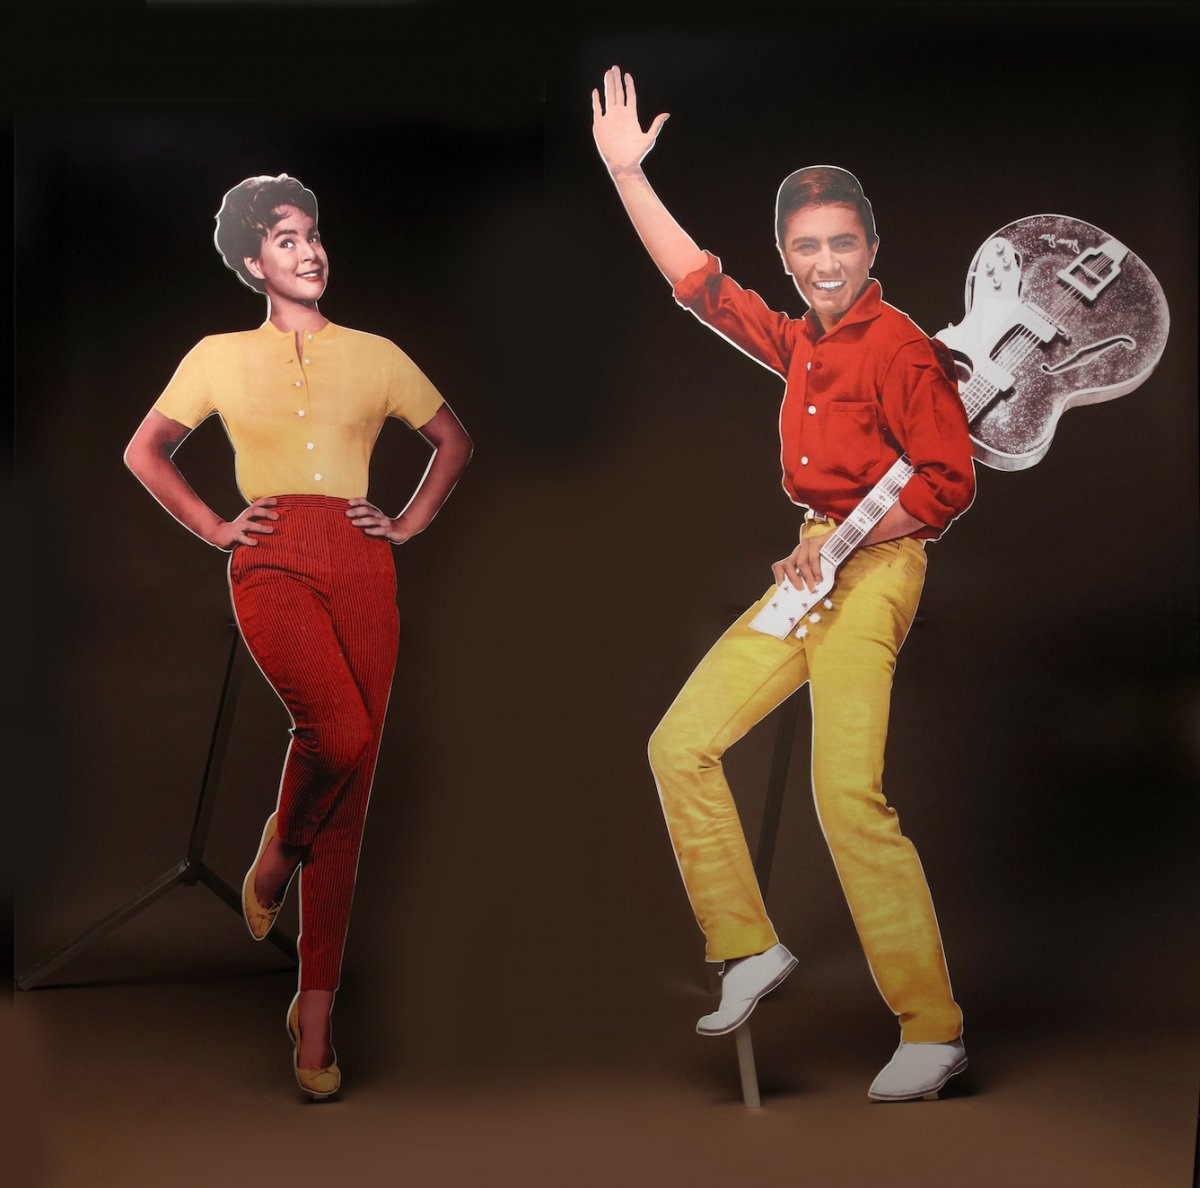 Two Interesting Life-size Advertisement Boards Of The Famous Conny Froboess & Rex Gildo 1960s